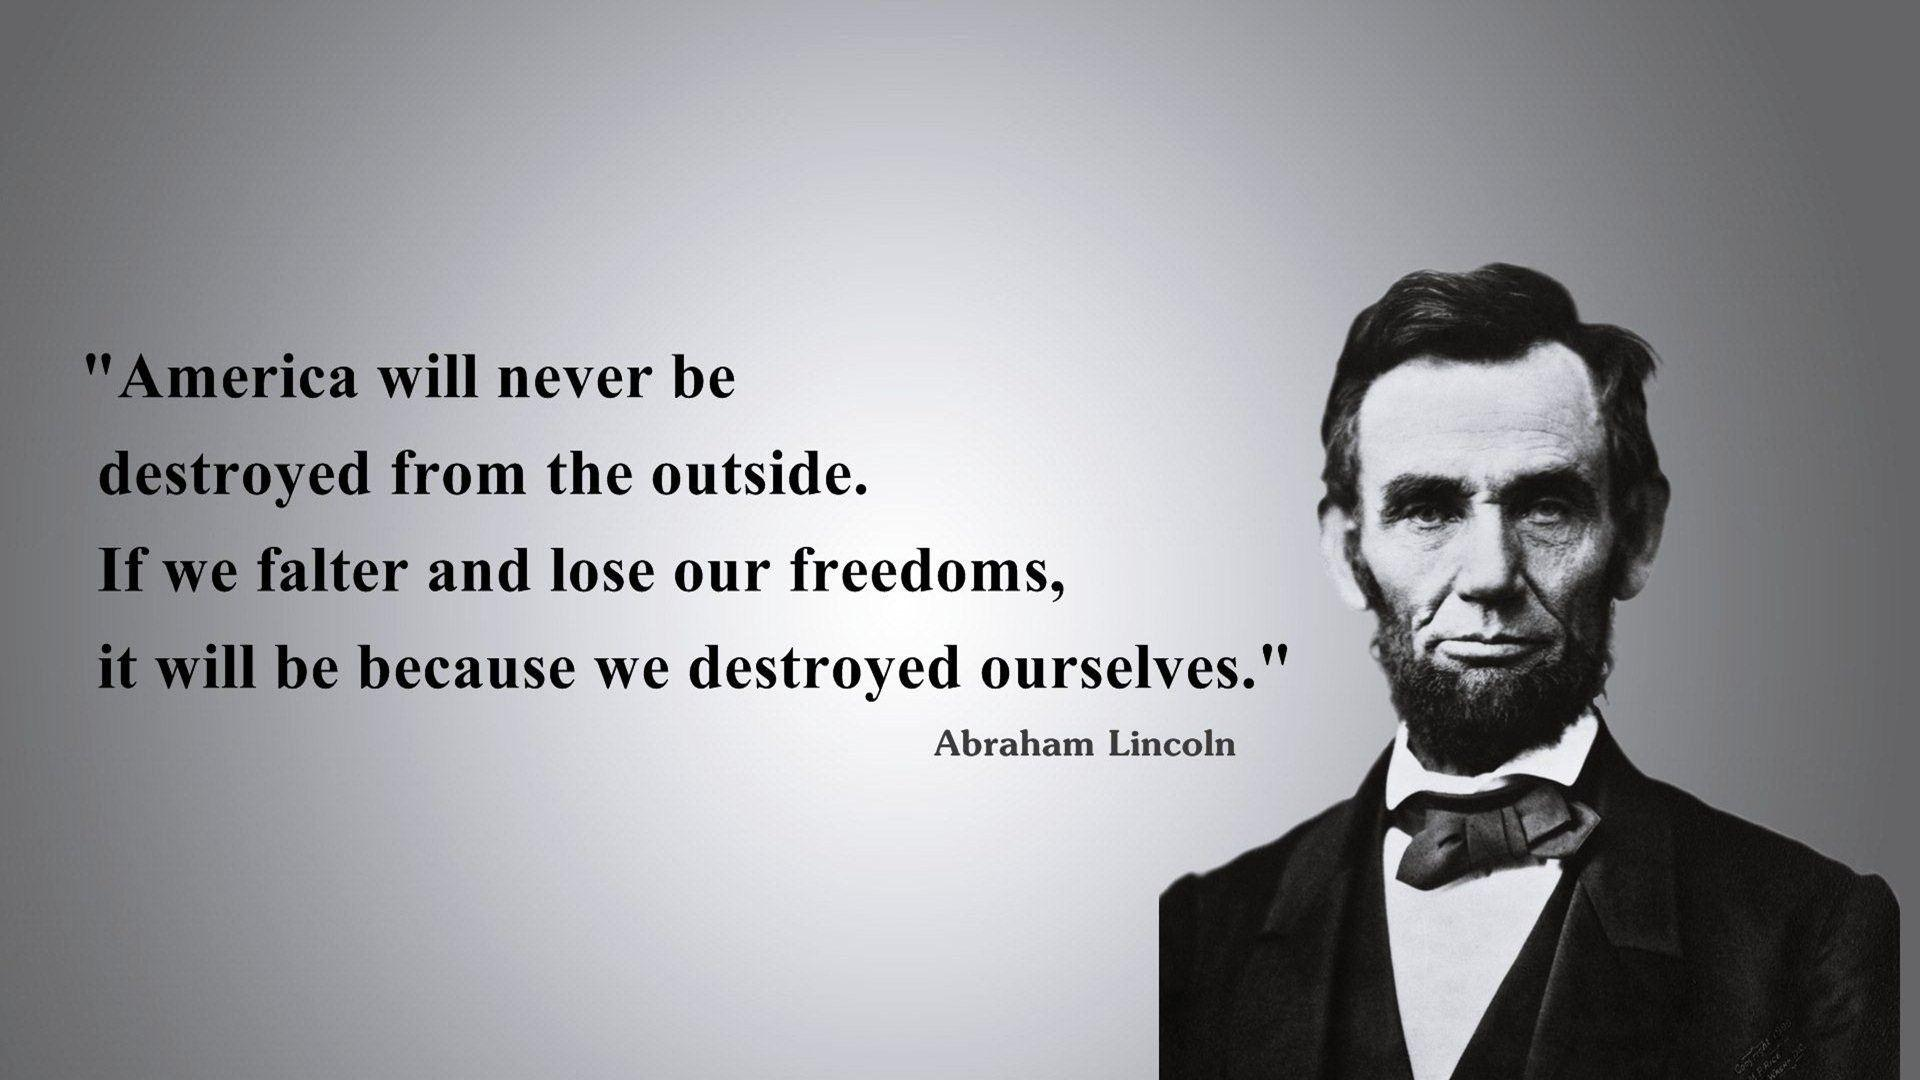 Abraham Lincoln Quotes Wallpapers HD Backgrounds, Images, Pics ...